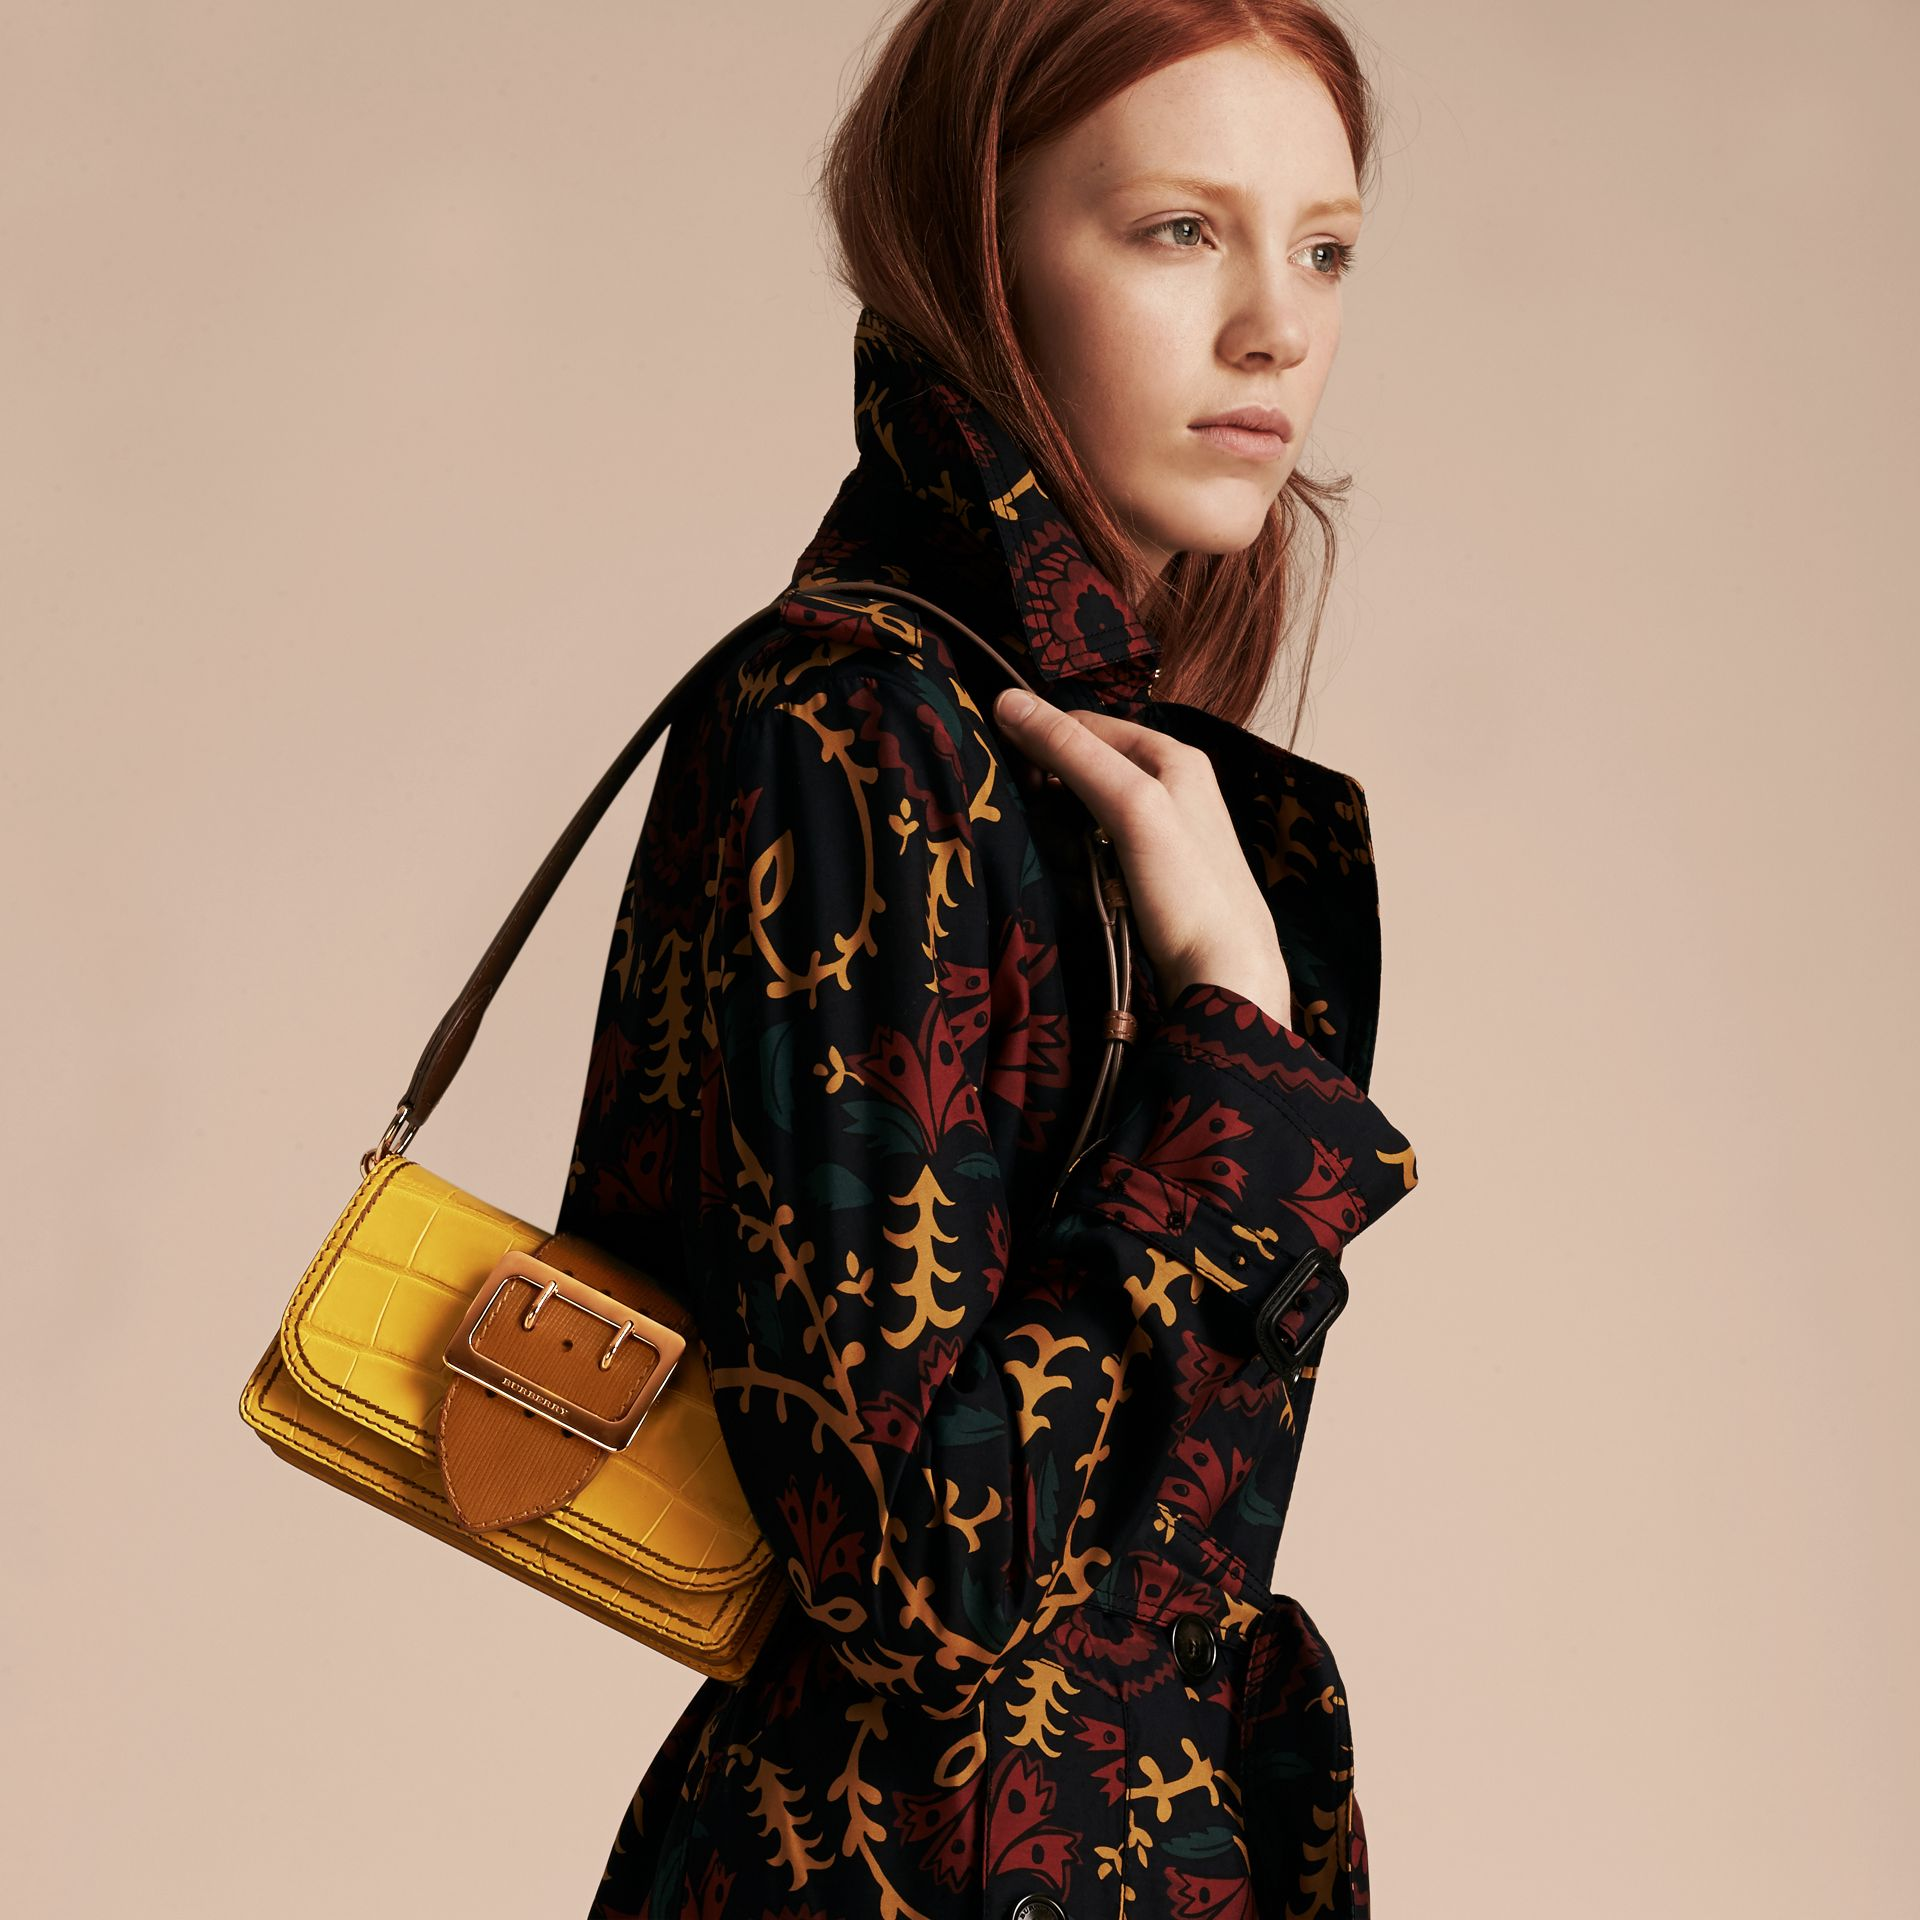 The Small Buckle Bag in Alligator and Leather in Citrus Yellow / Tan - Women | Burberry - gallery image 3